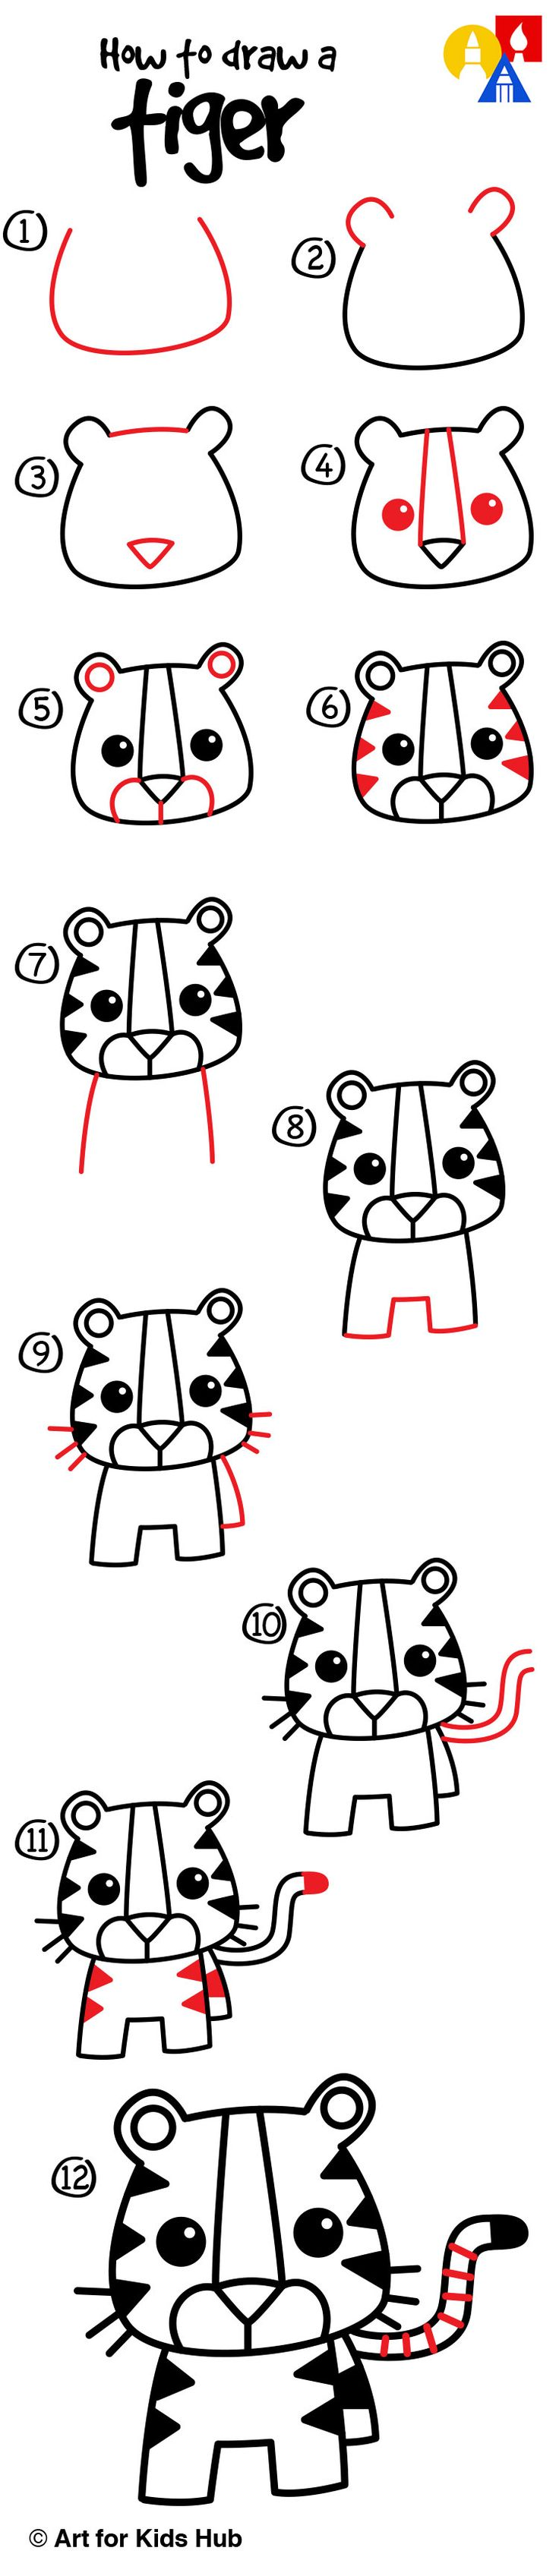 How To Draw A Cartoon Tiger  Art For Kids Hub